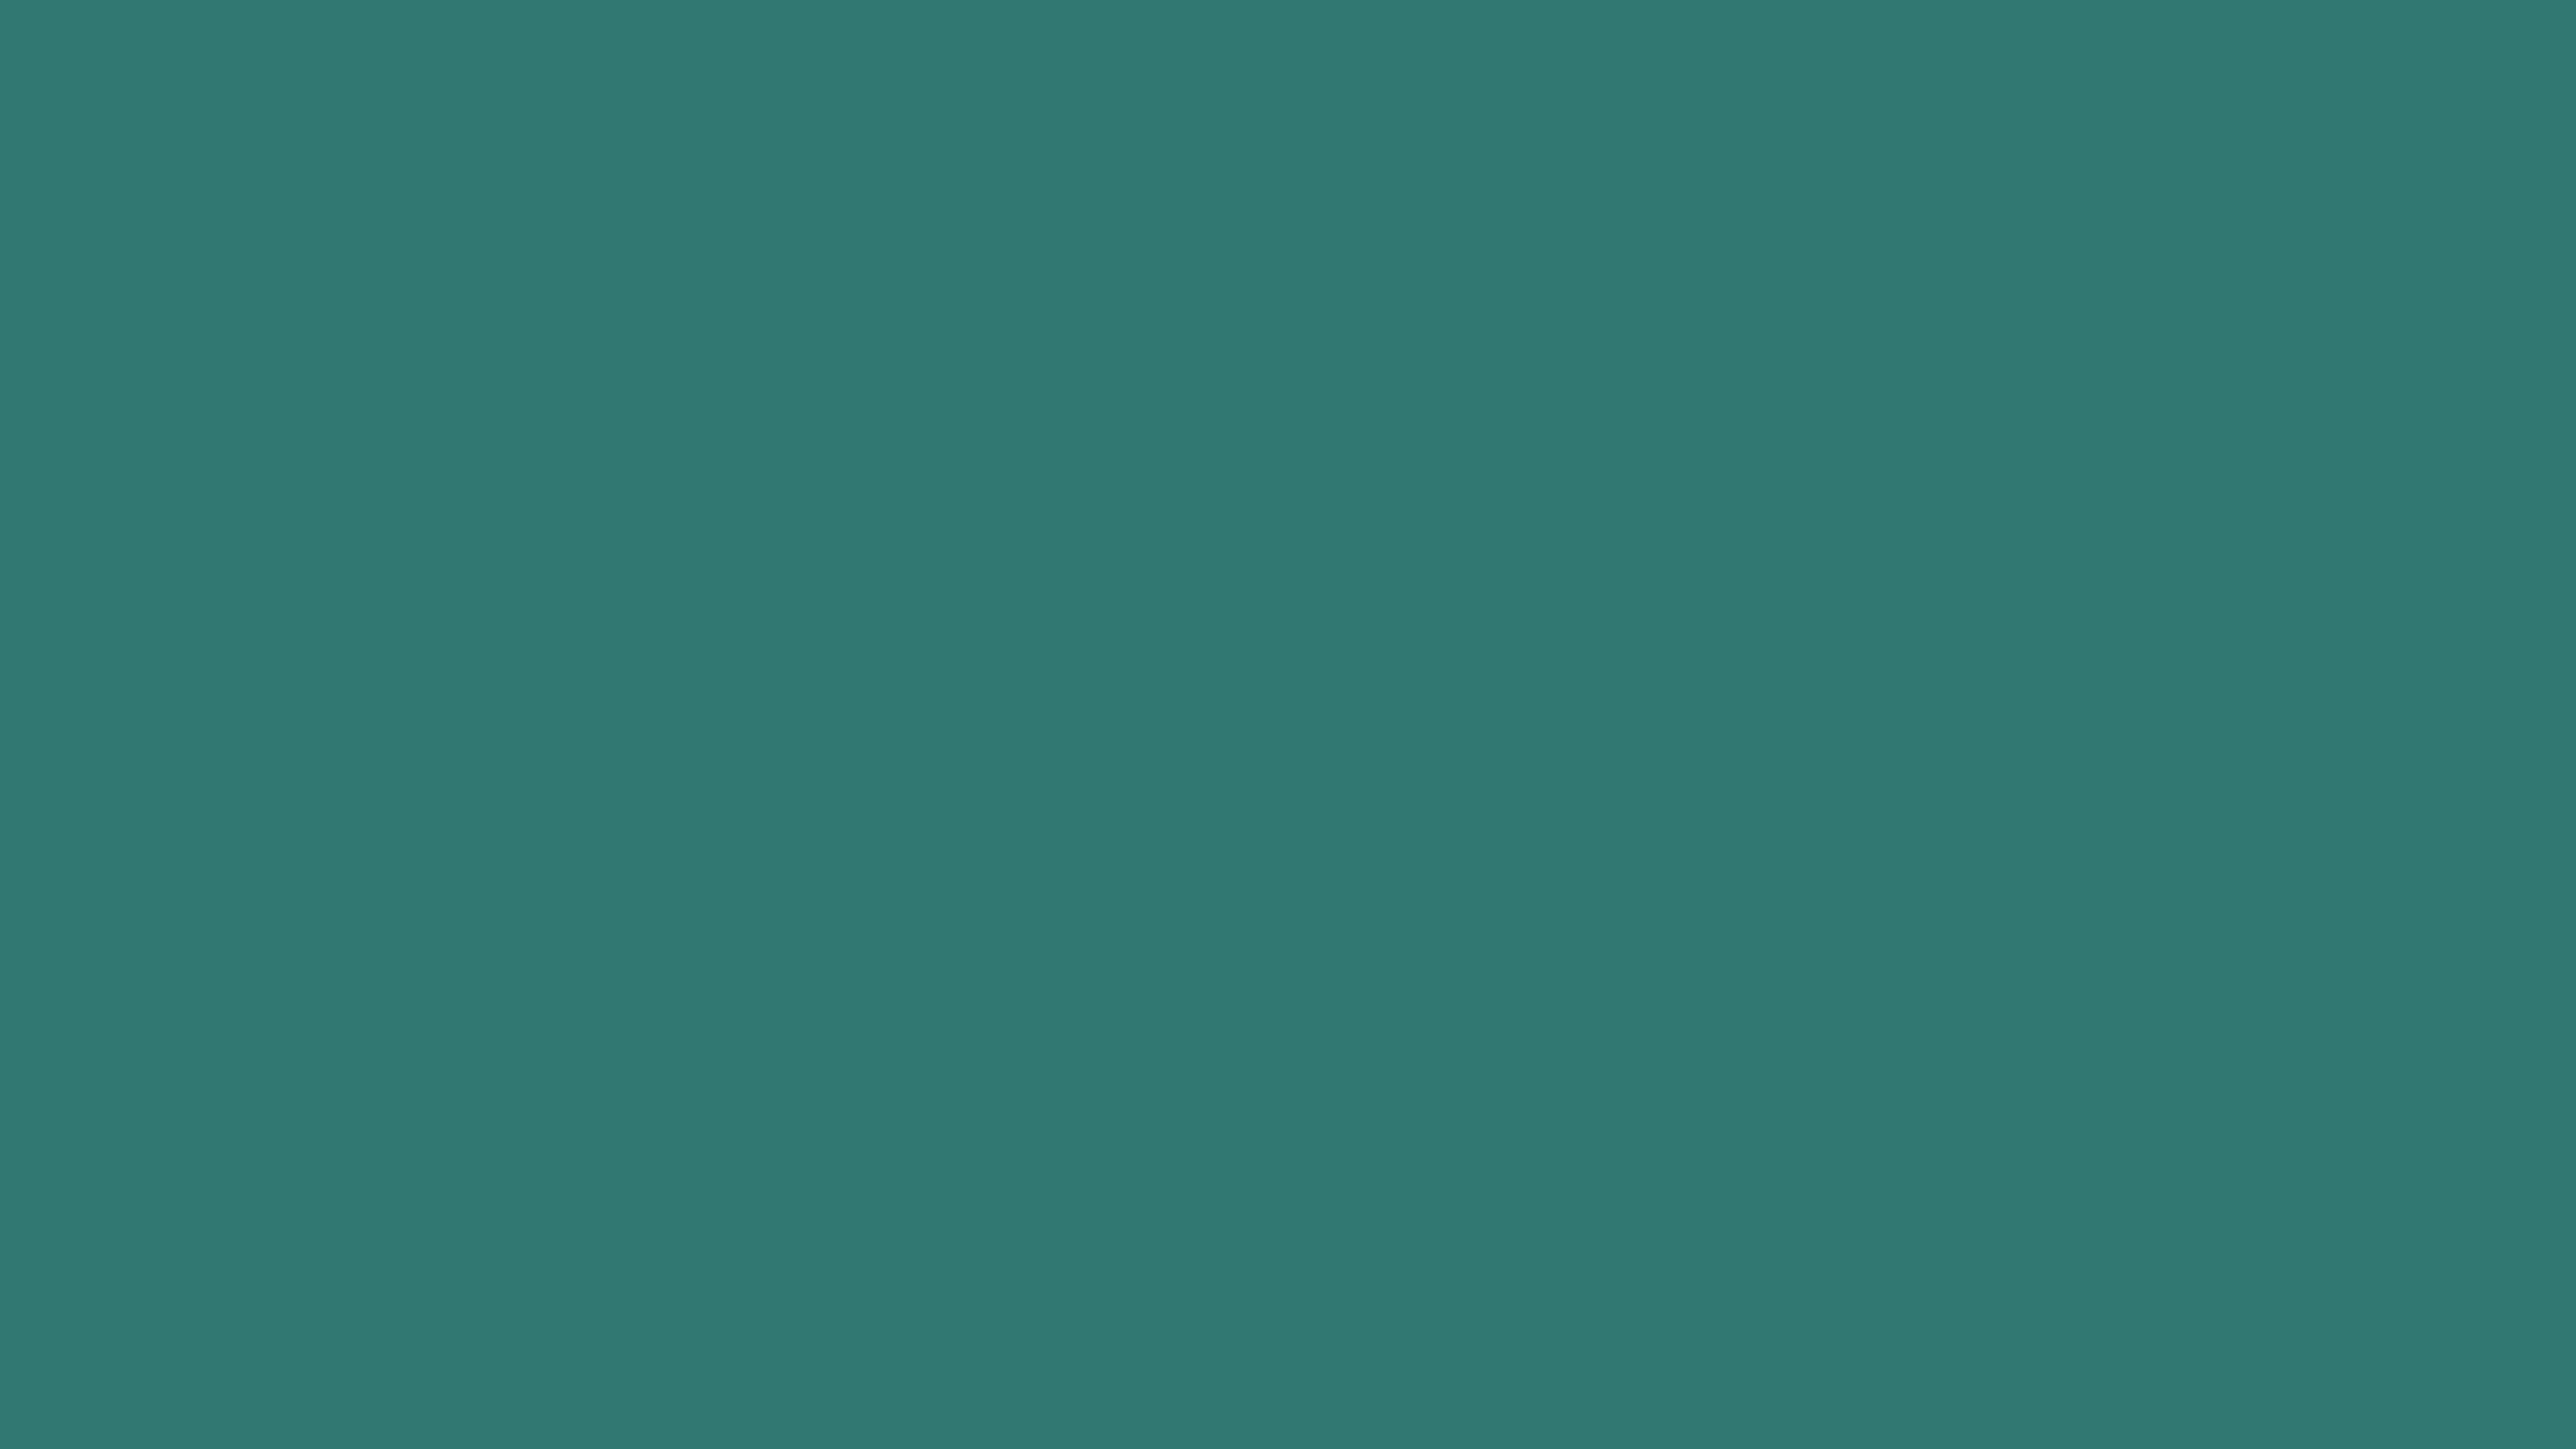 3840x2160 Myrtle Green Solid Color Background